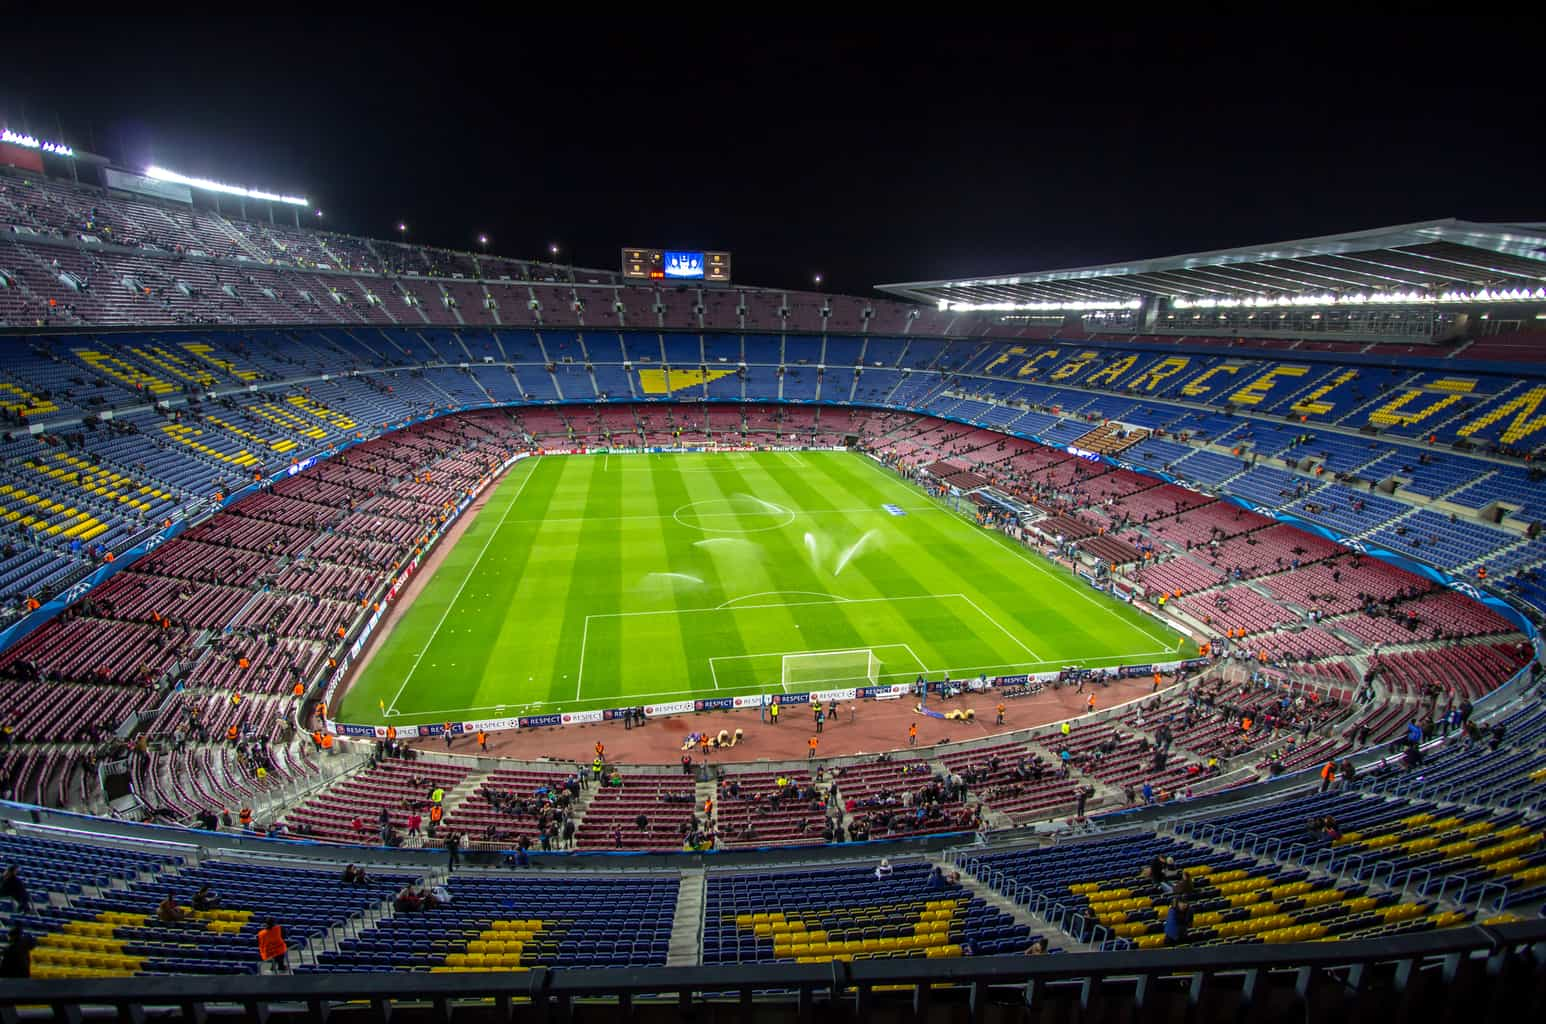 Camp Nou, Barcelona's impressive and expansive football stadium.